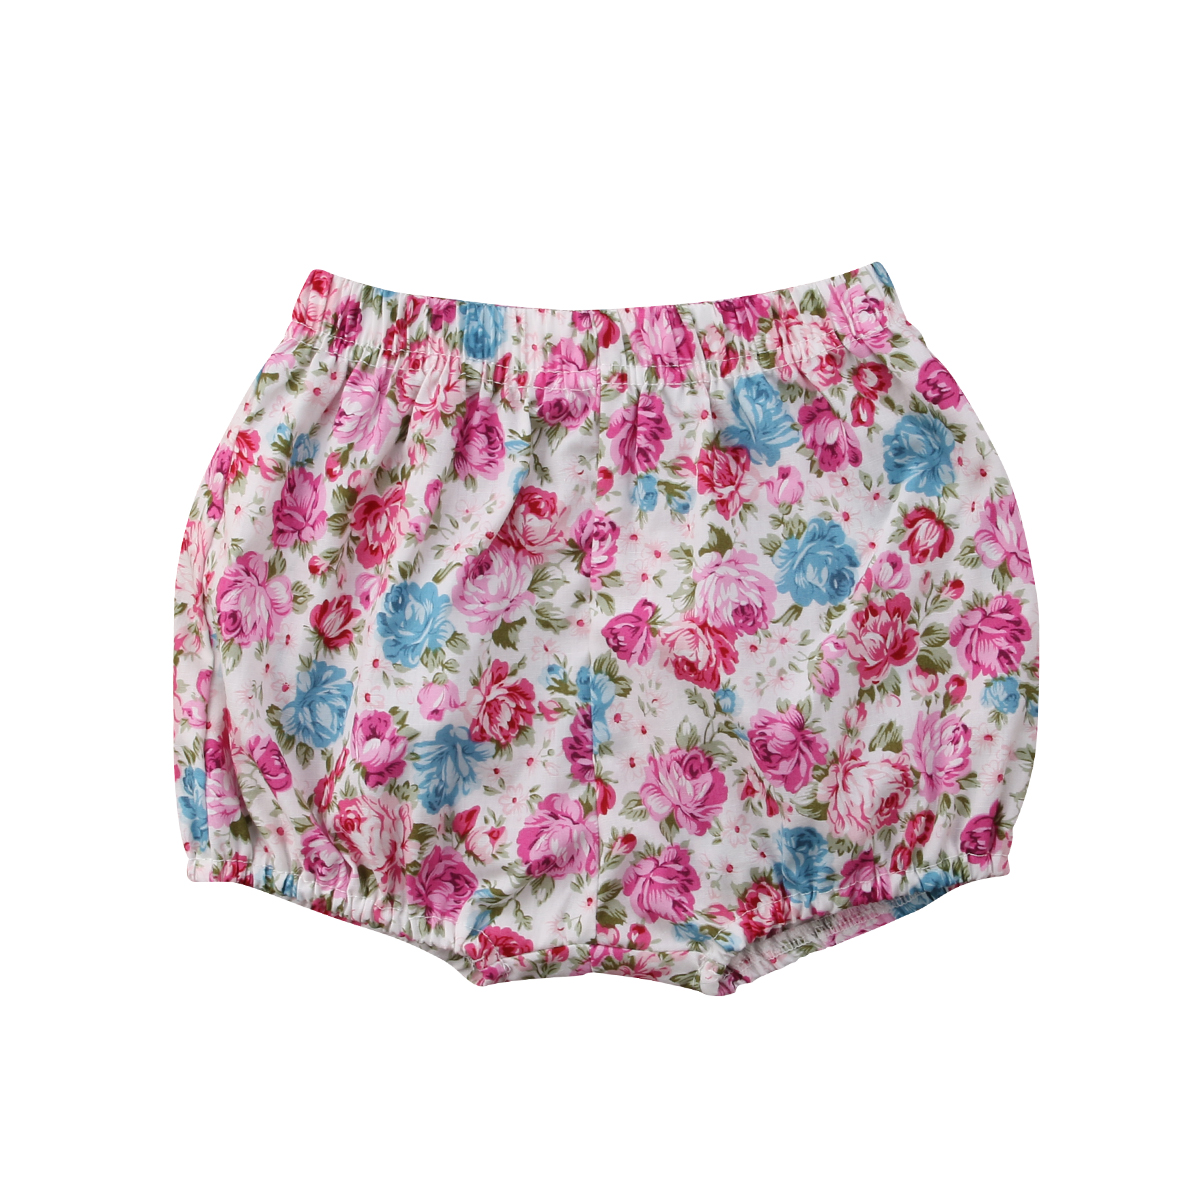 2019 pudcoco For Baby Girls   Shorts   Bloomers Floral Ruffle Toddler Shorty Summer Autumn Lucky Newborn Cherting Child Panties